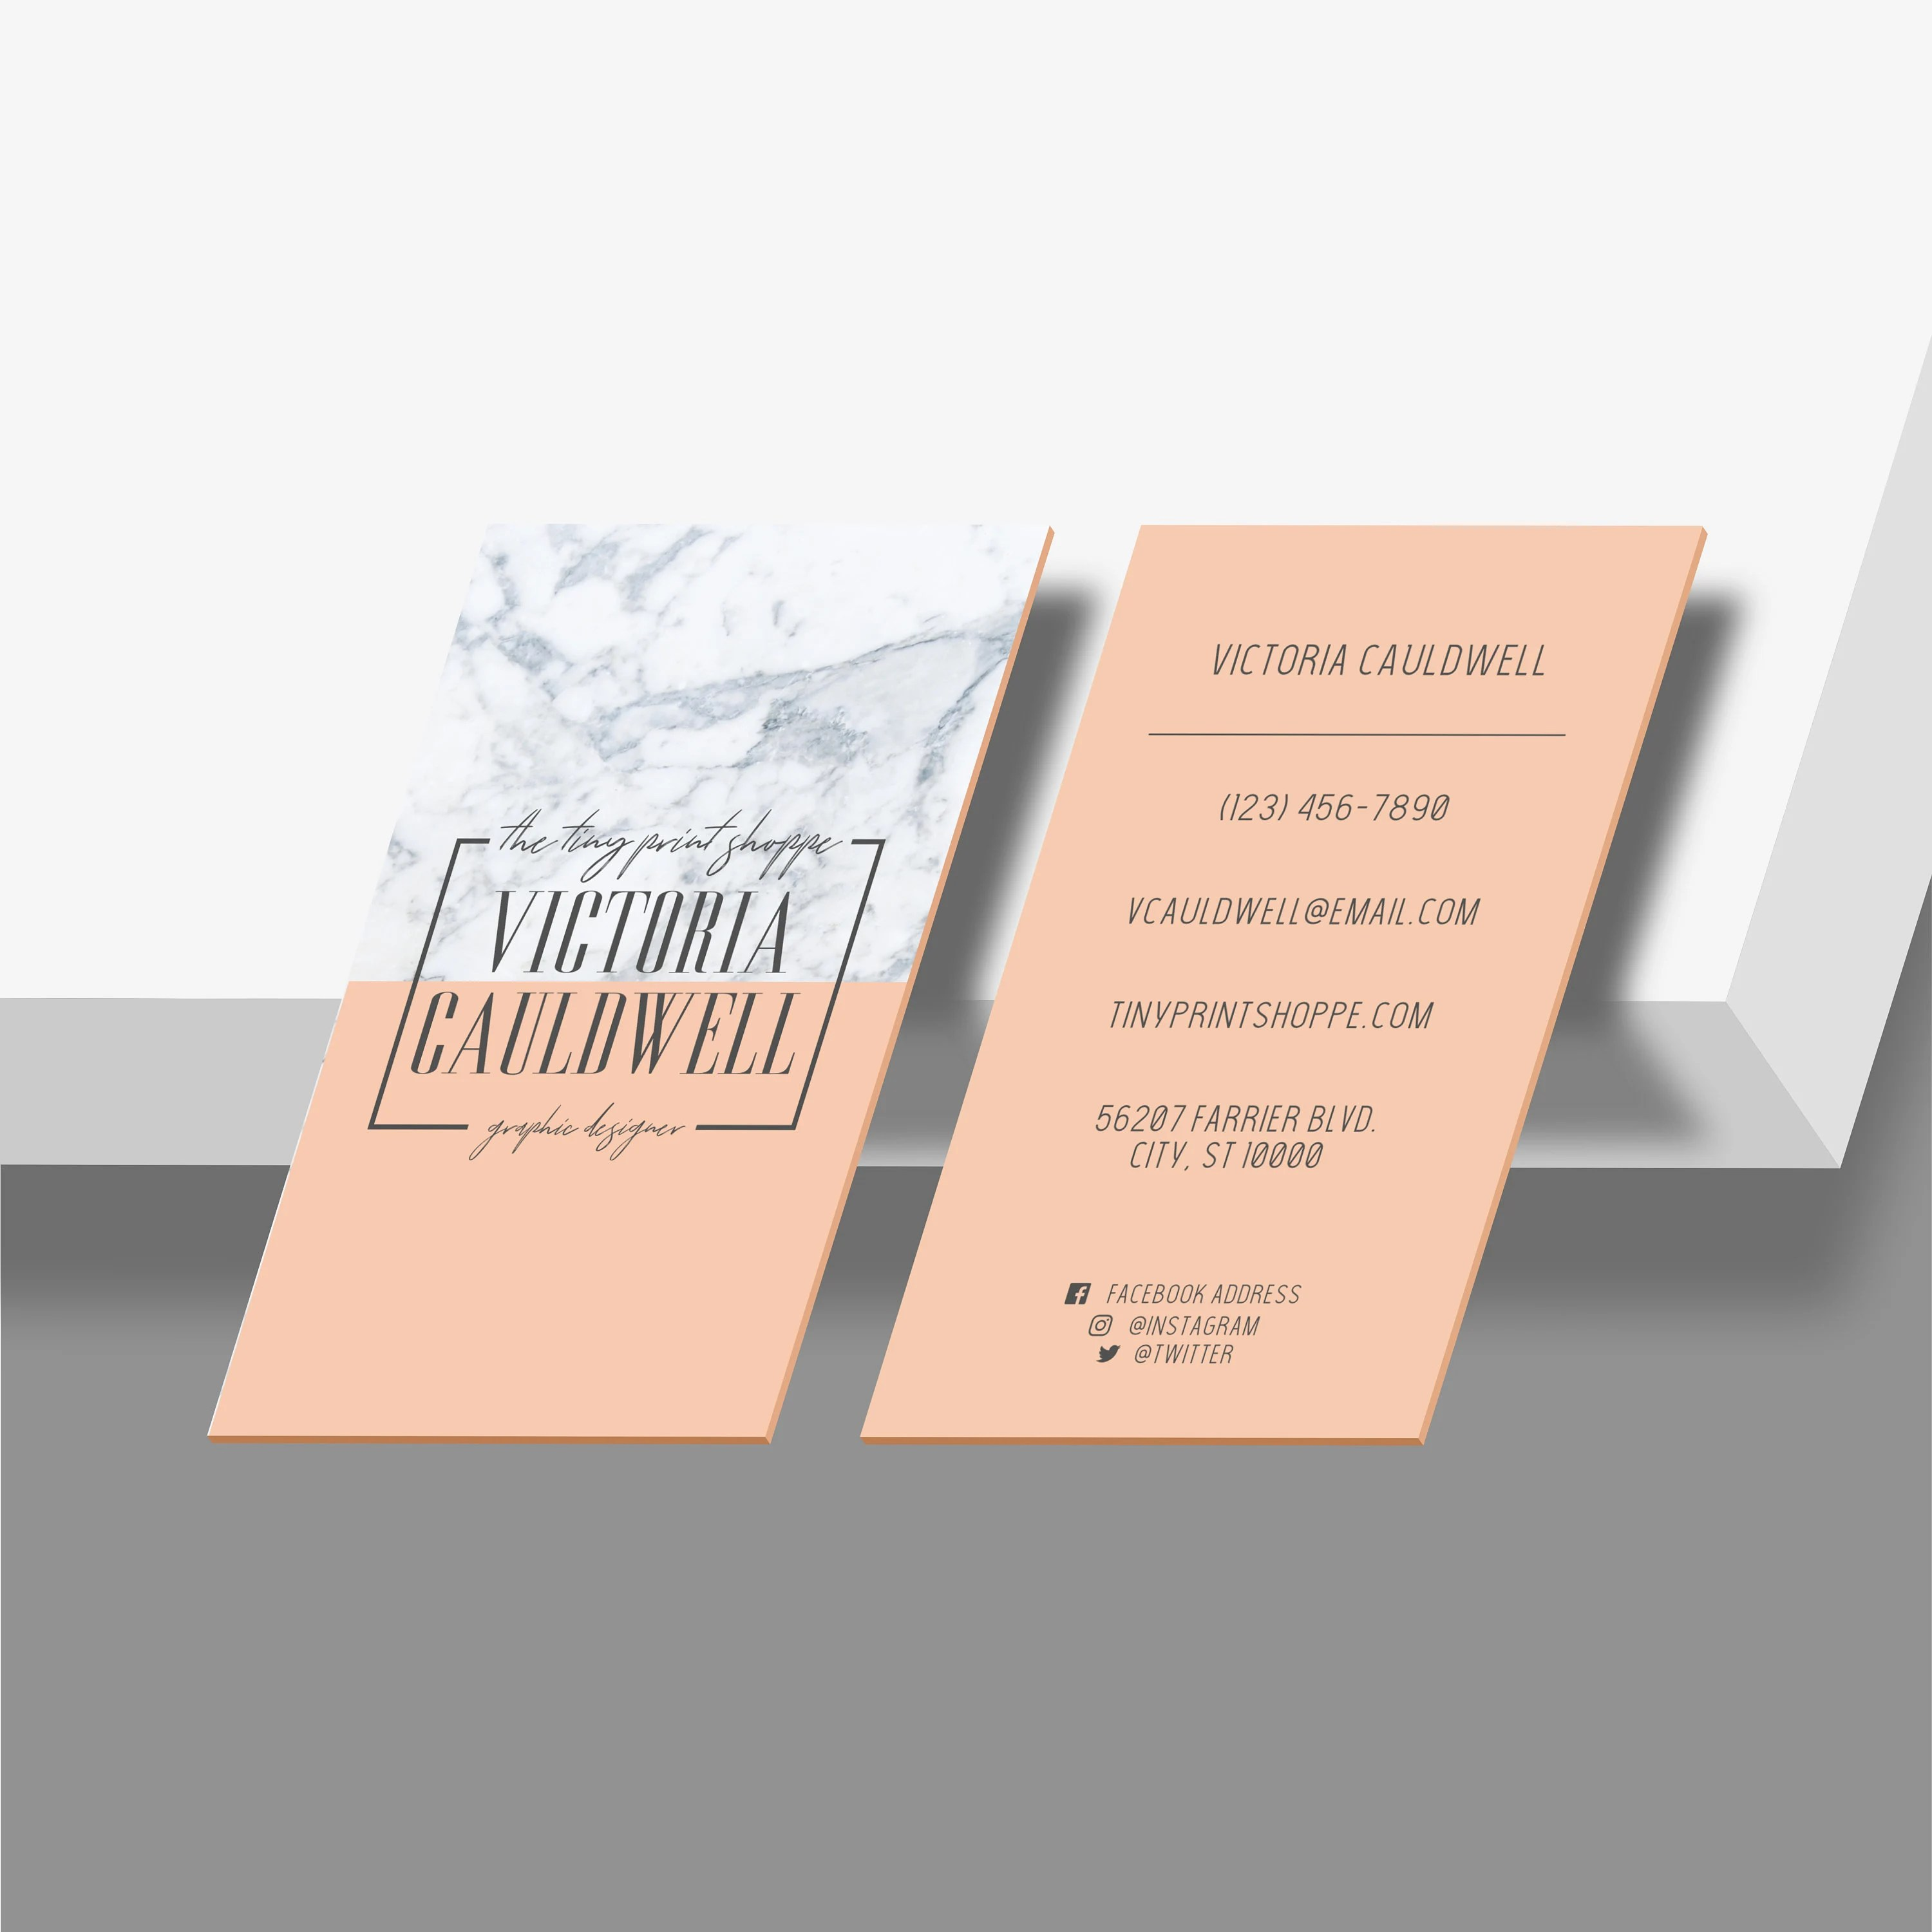 Granite and Pastel Business Card Design Vertical Business Etsy